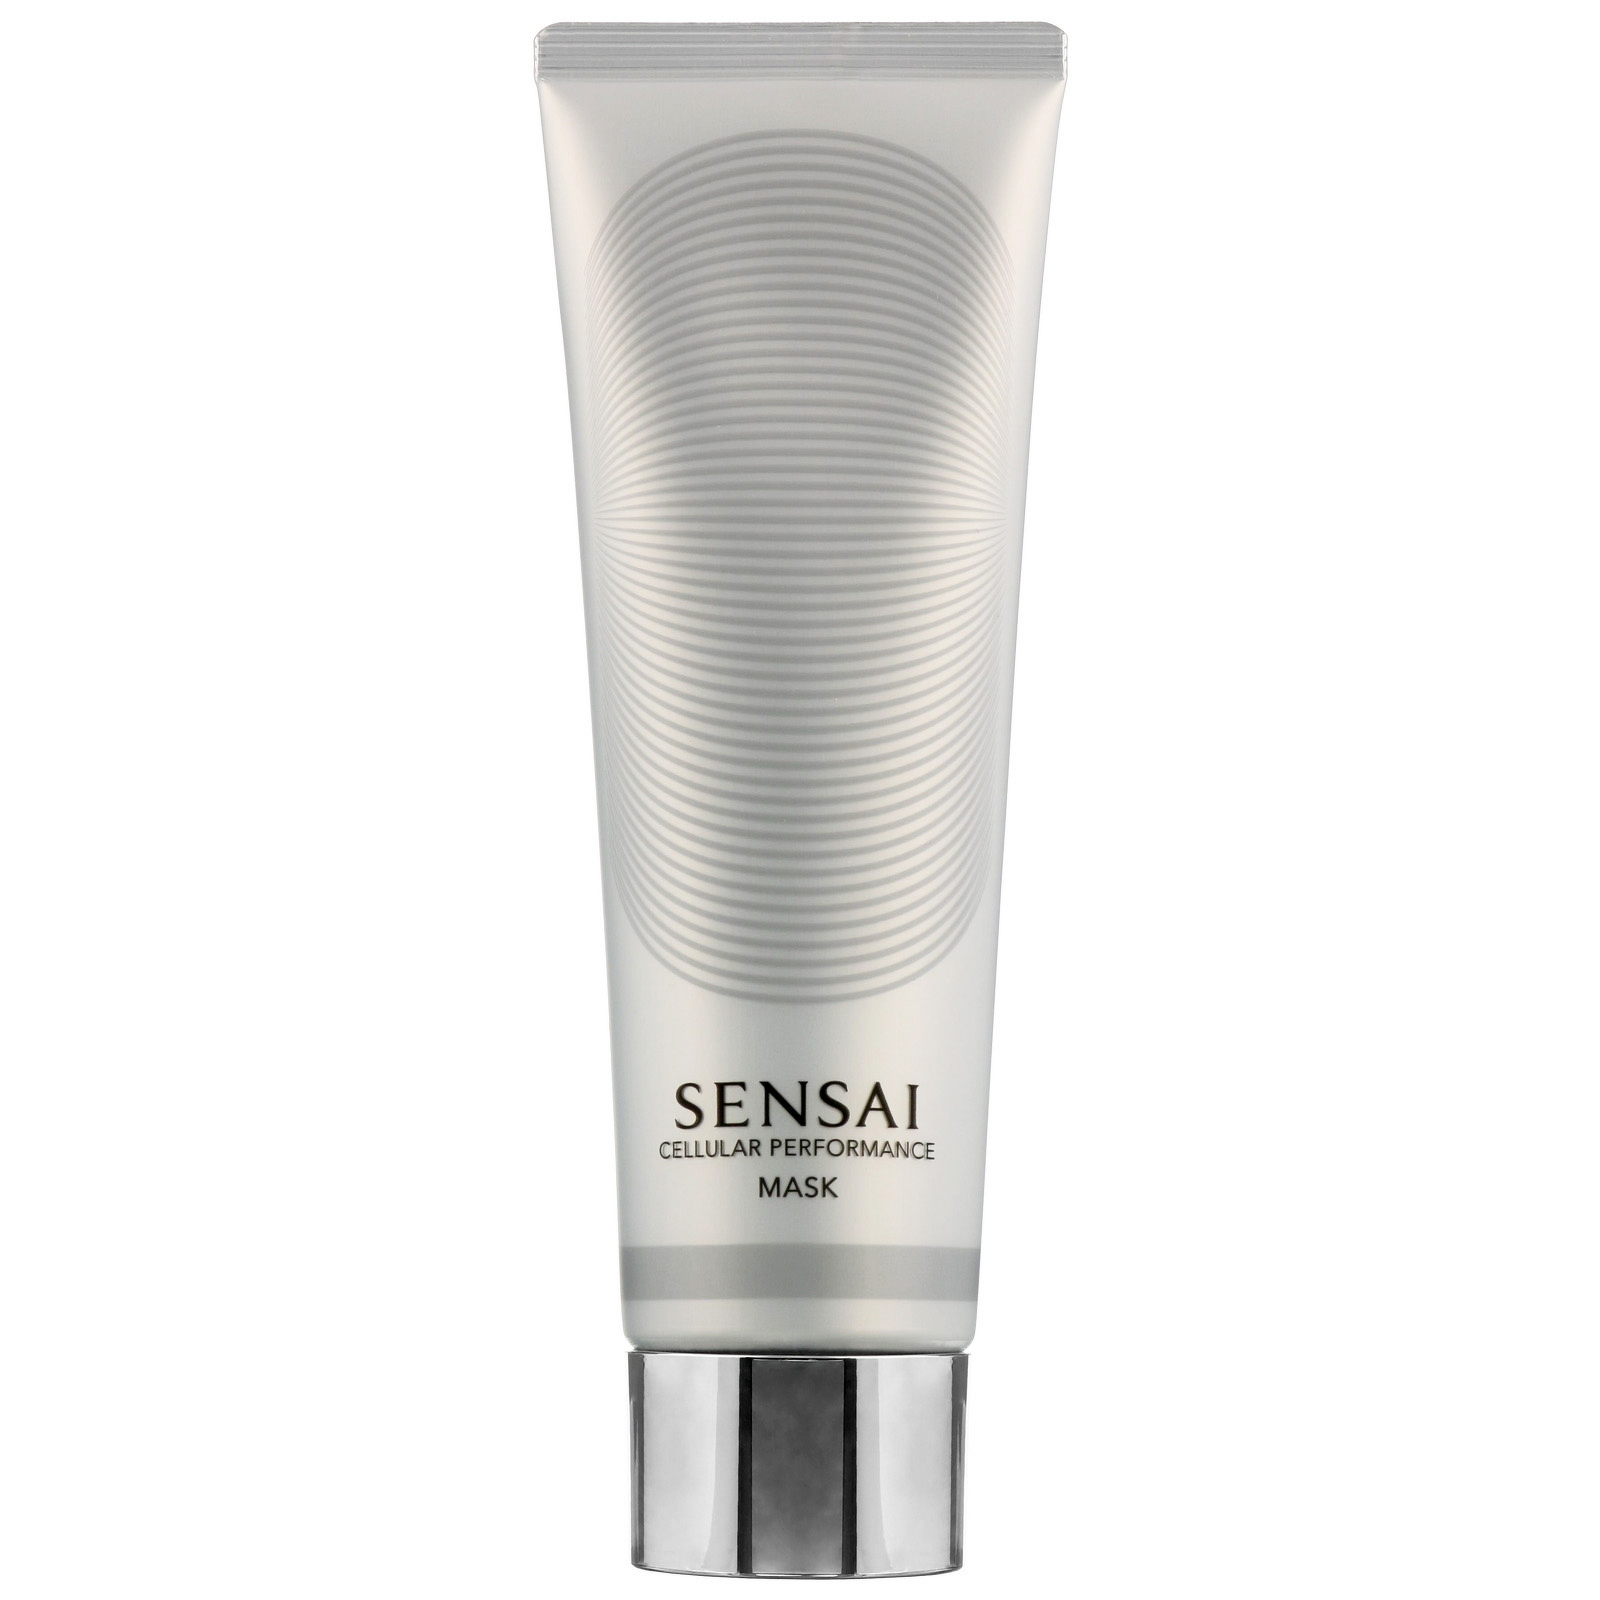 SENSAI Cellular Performance Standard Series Mask 100ml